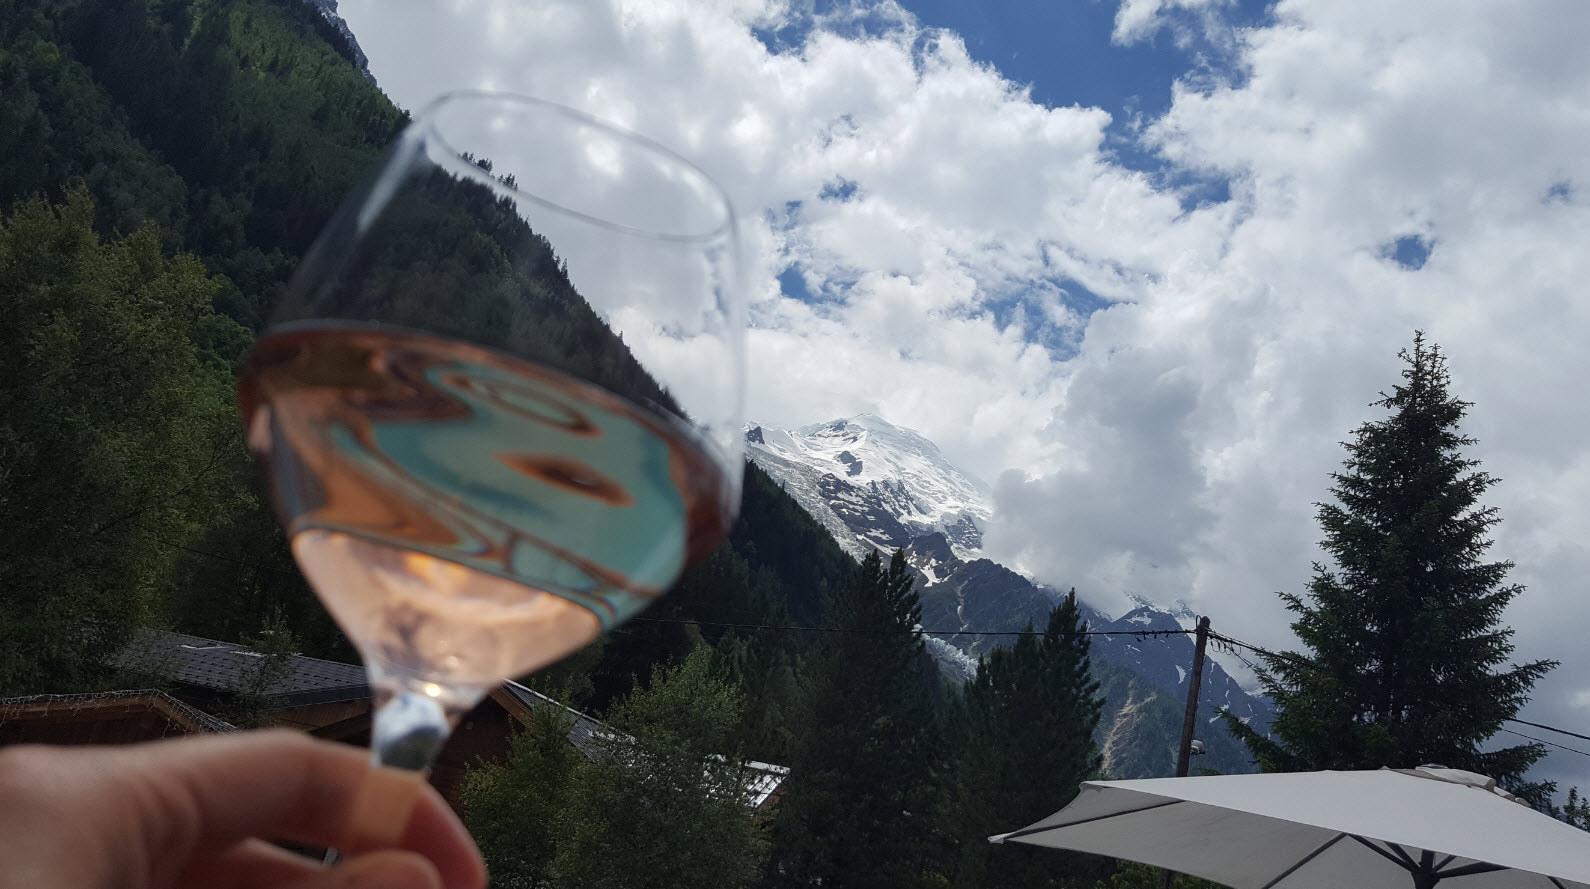 ... with the Mont-Blanc